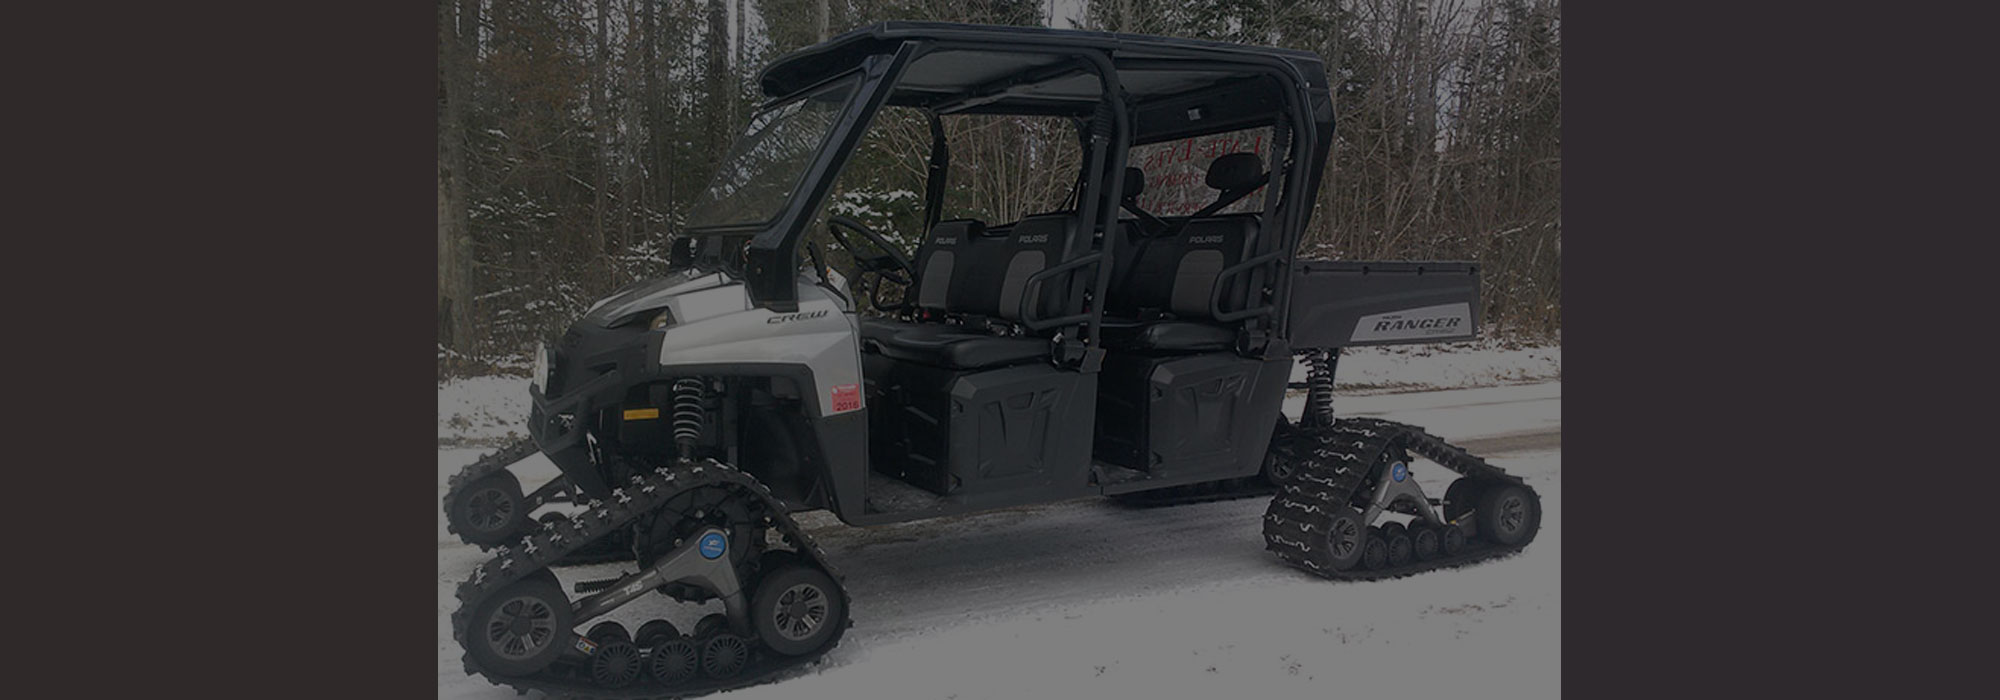 Ice Fishing in Door County, WI with Guide and All Terrain Ice Transport Vehicle